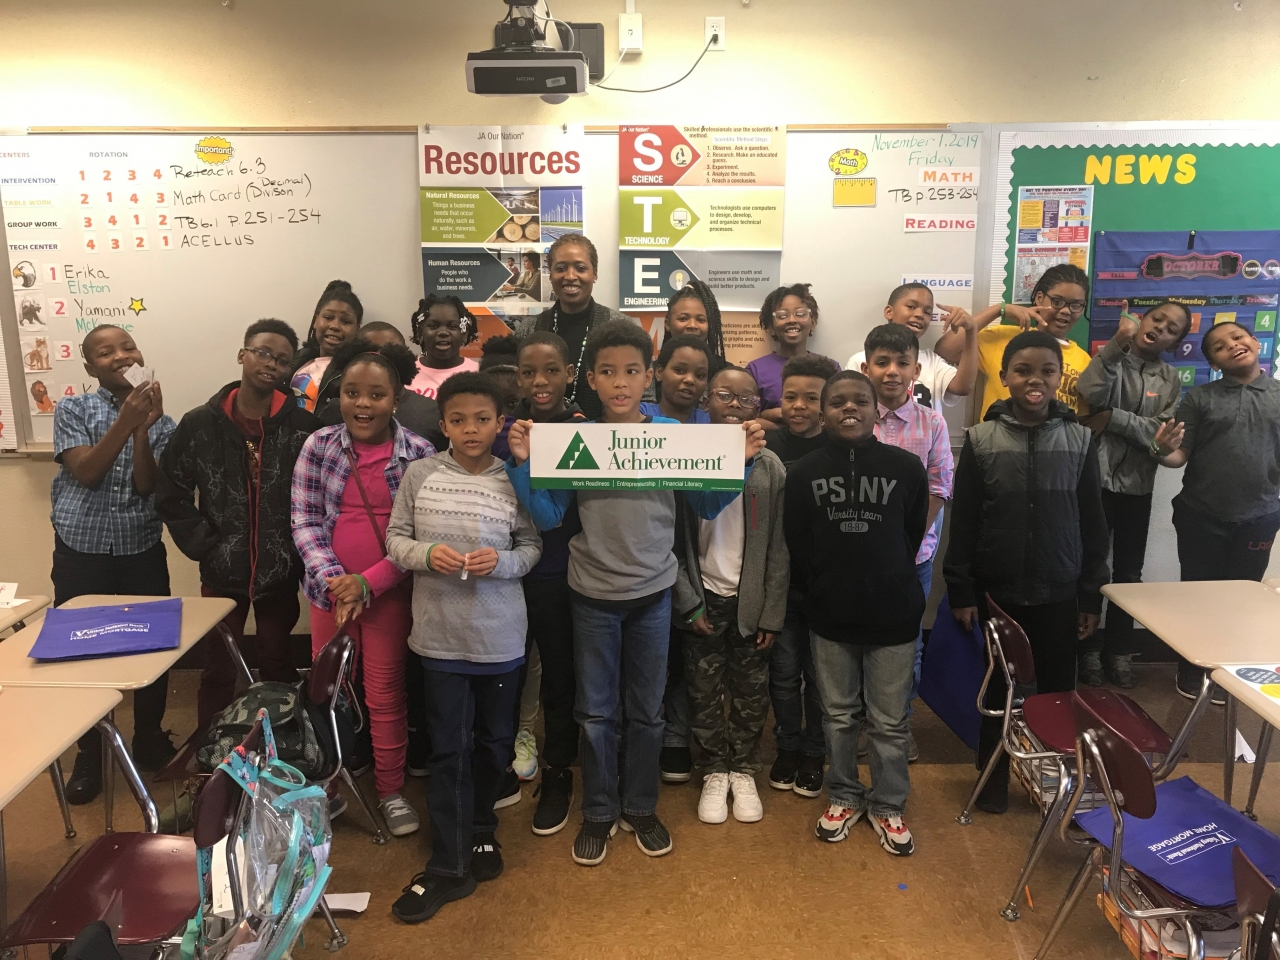 Valley teaches children financial literacy through Junior Achievement programs.